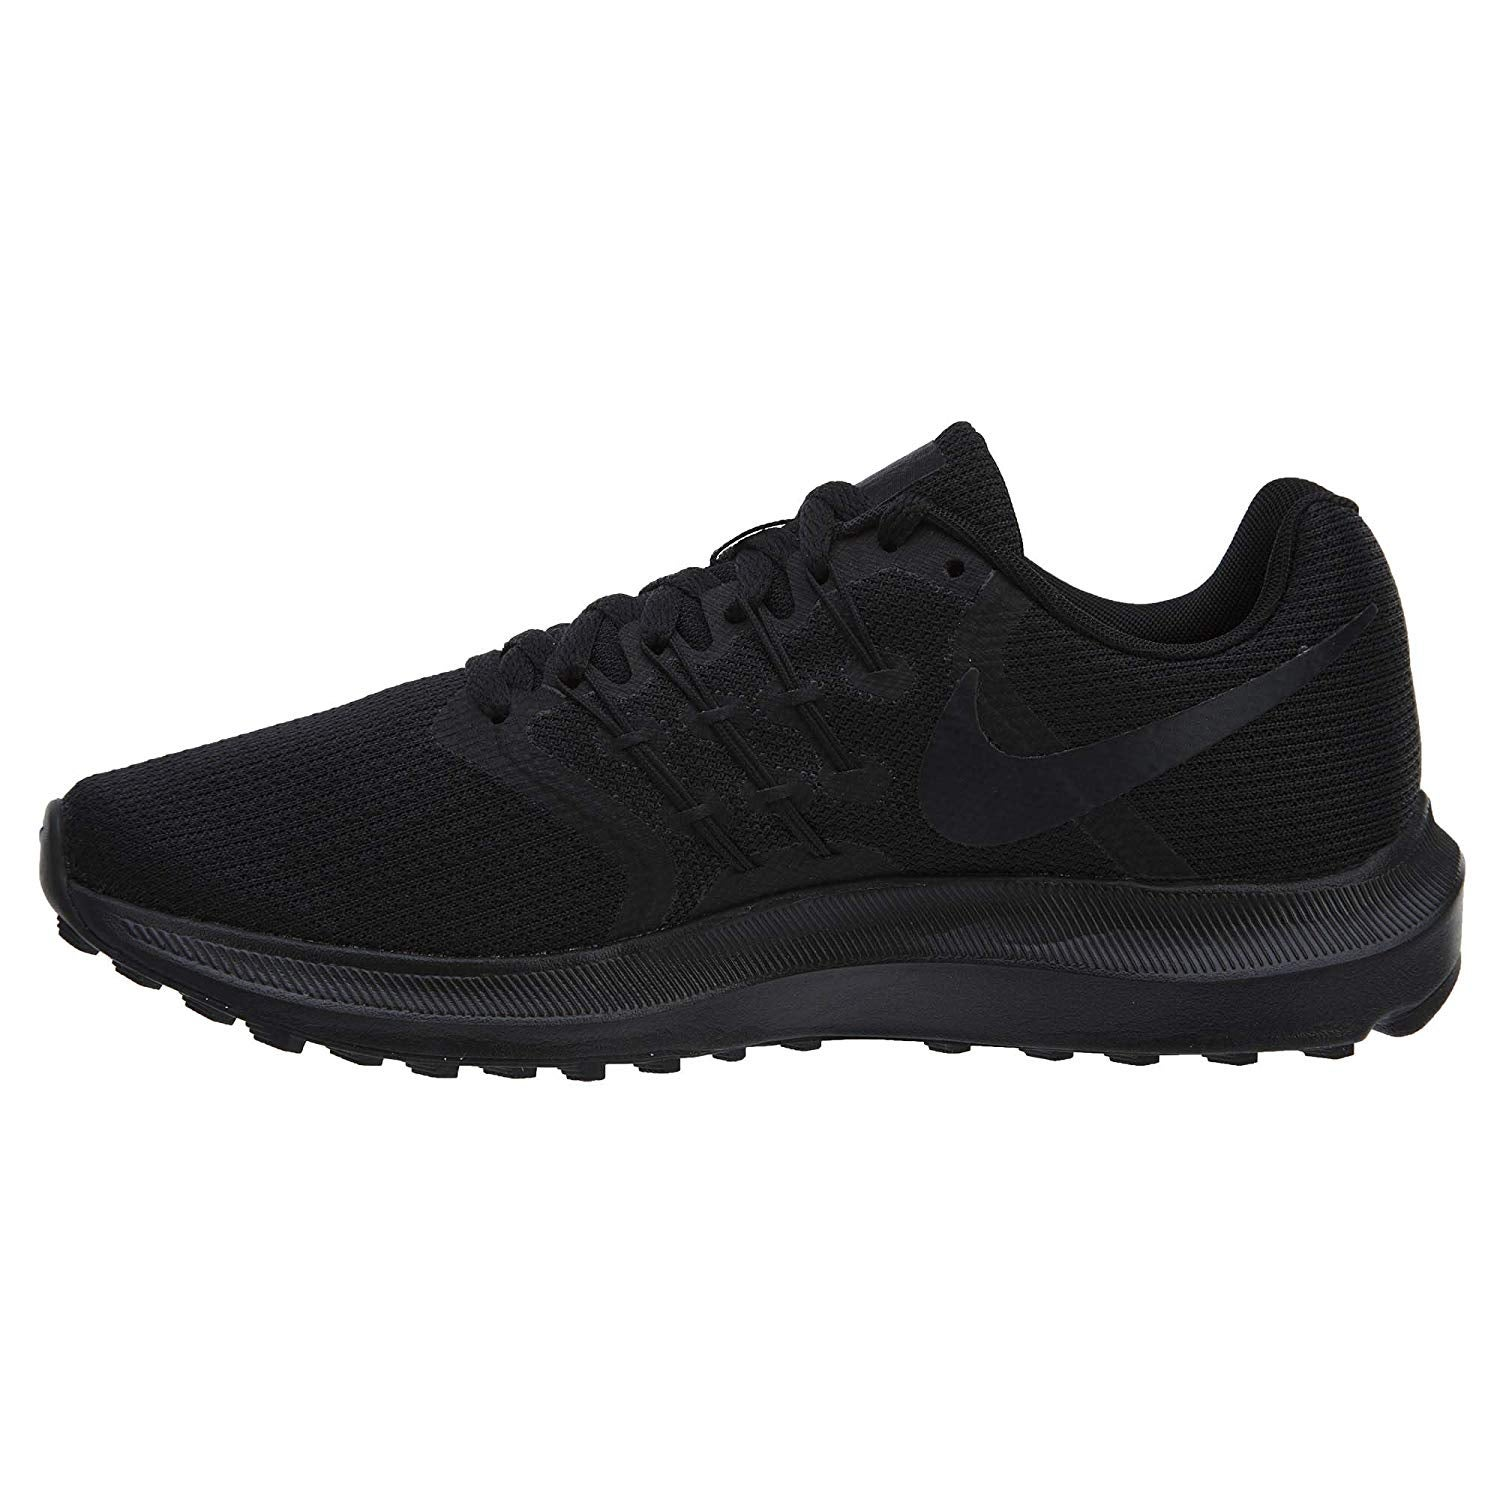 f83e7014334 Shop Nike Wmns Run Swift Womens 909006-019 Size 7 - Free Shipping Today -  Overstock - 24302337